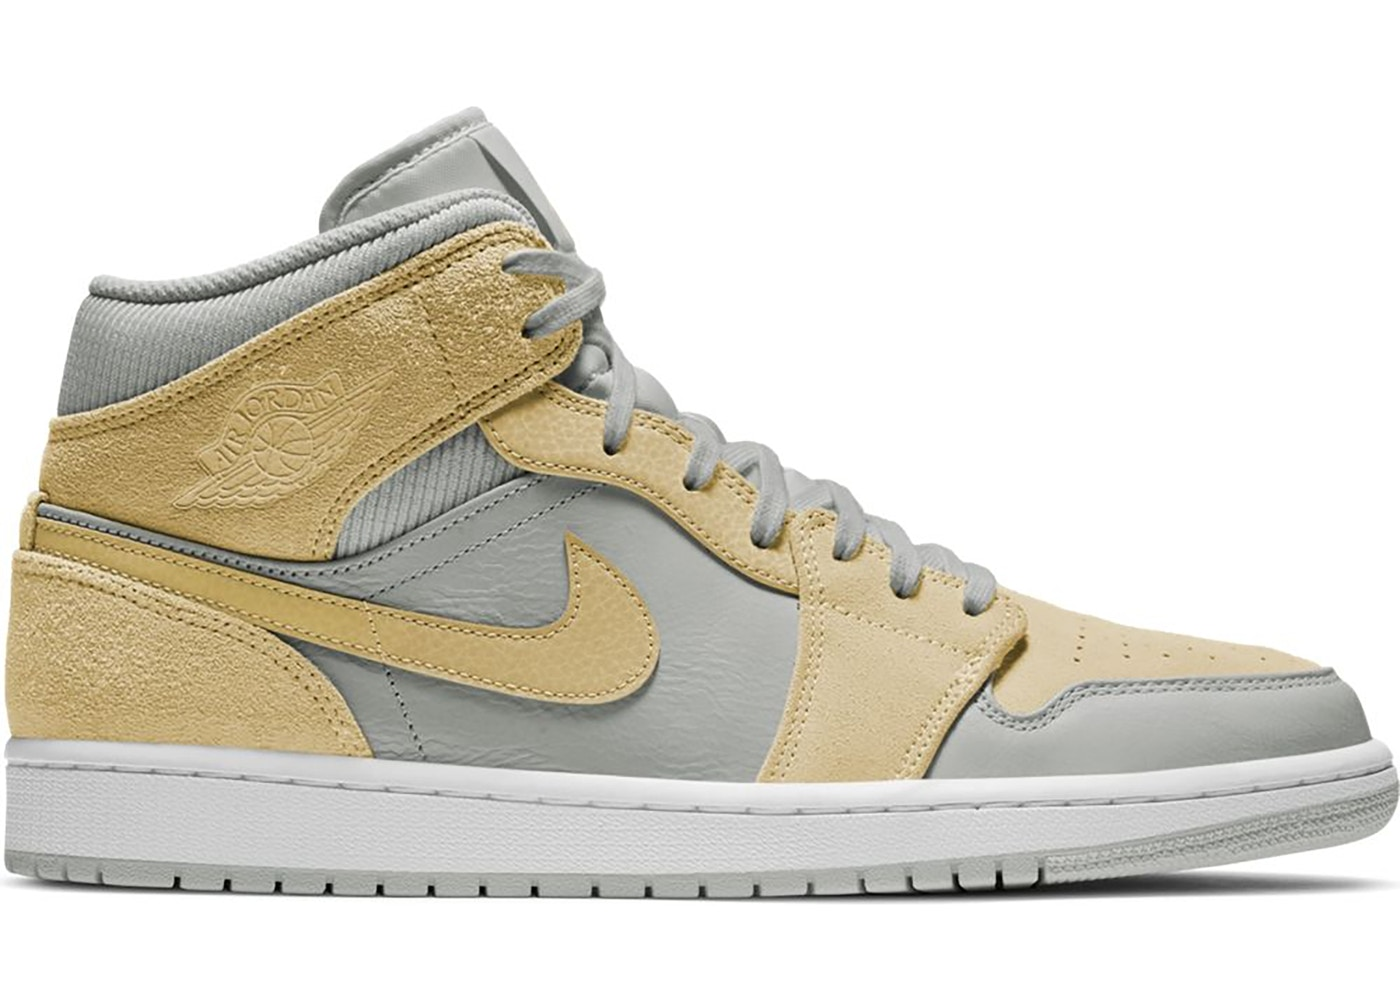 Jordan 1 Mid Mixed Textures Yellow Da4666 001